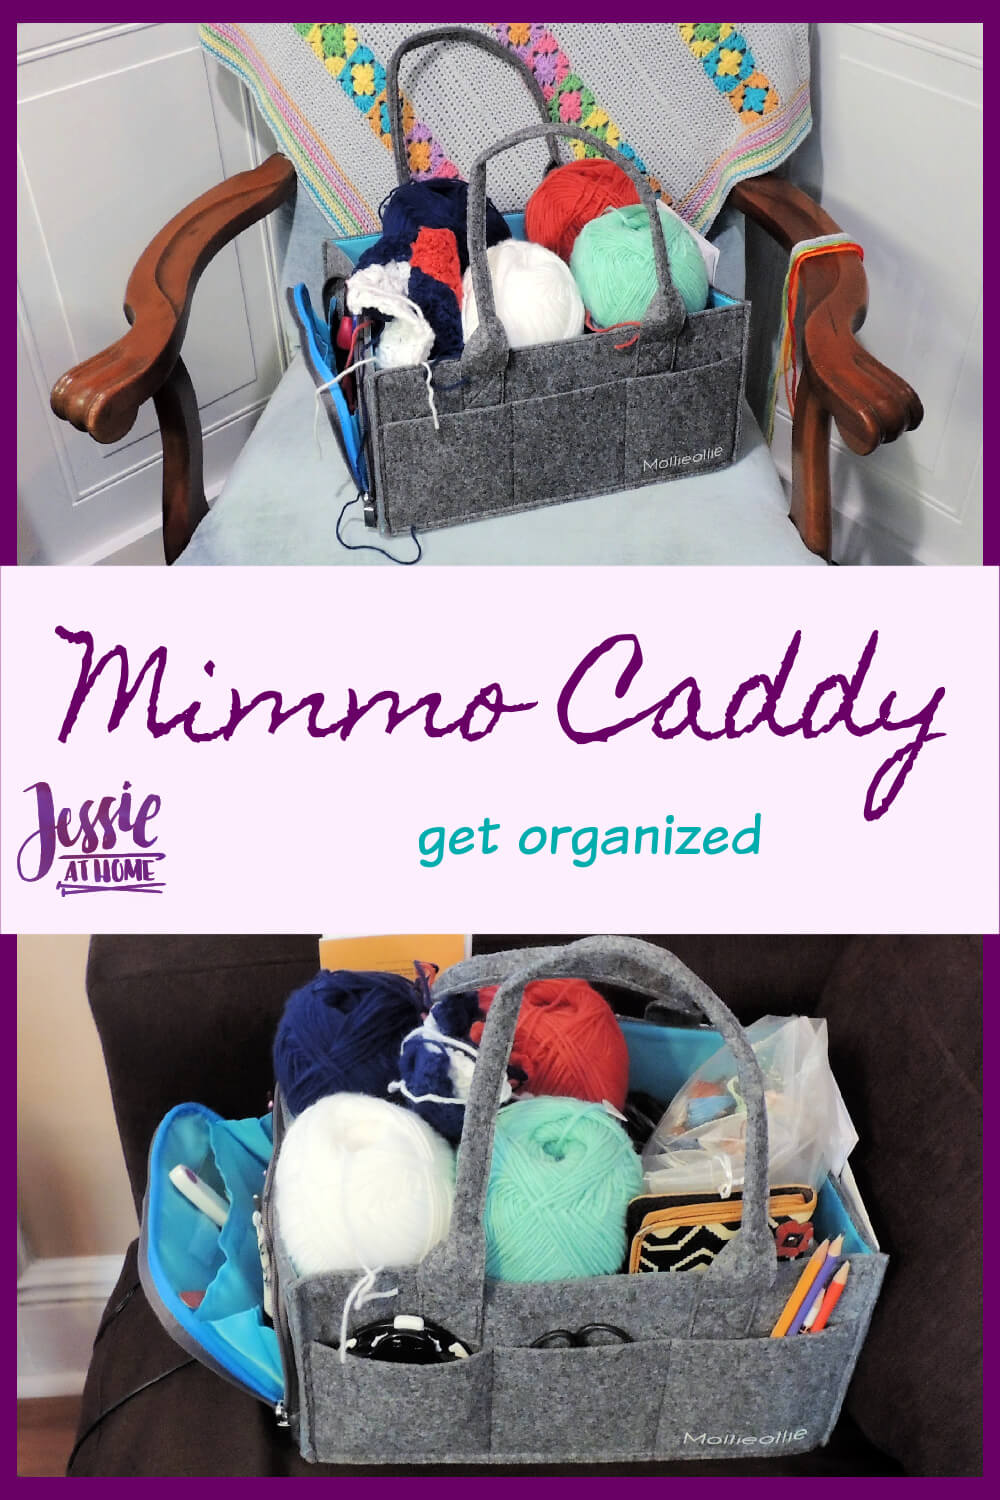 Mimmo Caddy Review - Organize (part of) your Life!